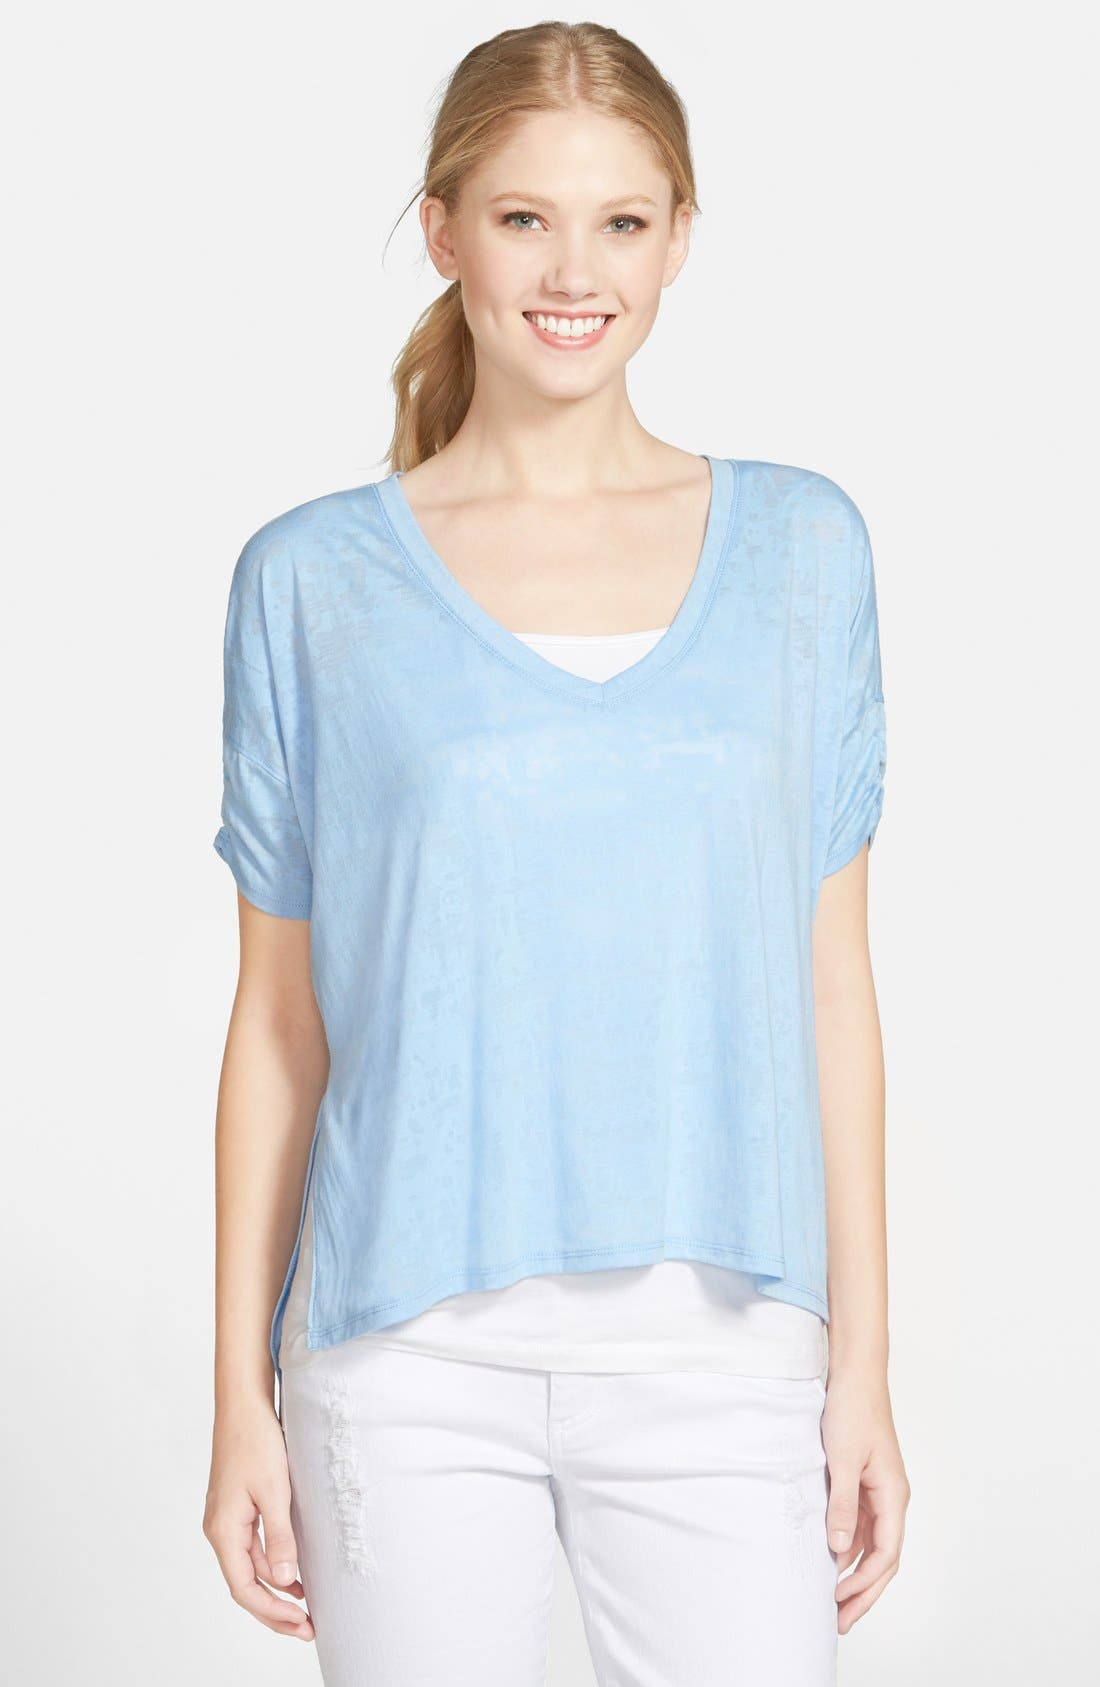 Alternate Image 1 Selected - Two by Vince Camuto Boxy High/Low Burnout Tee